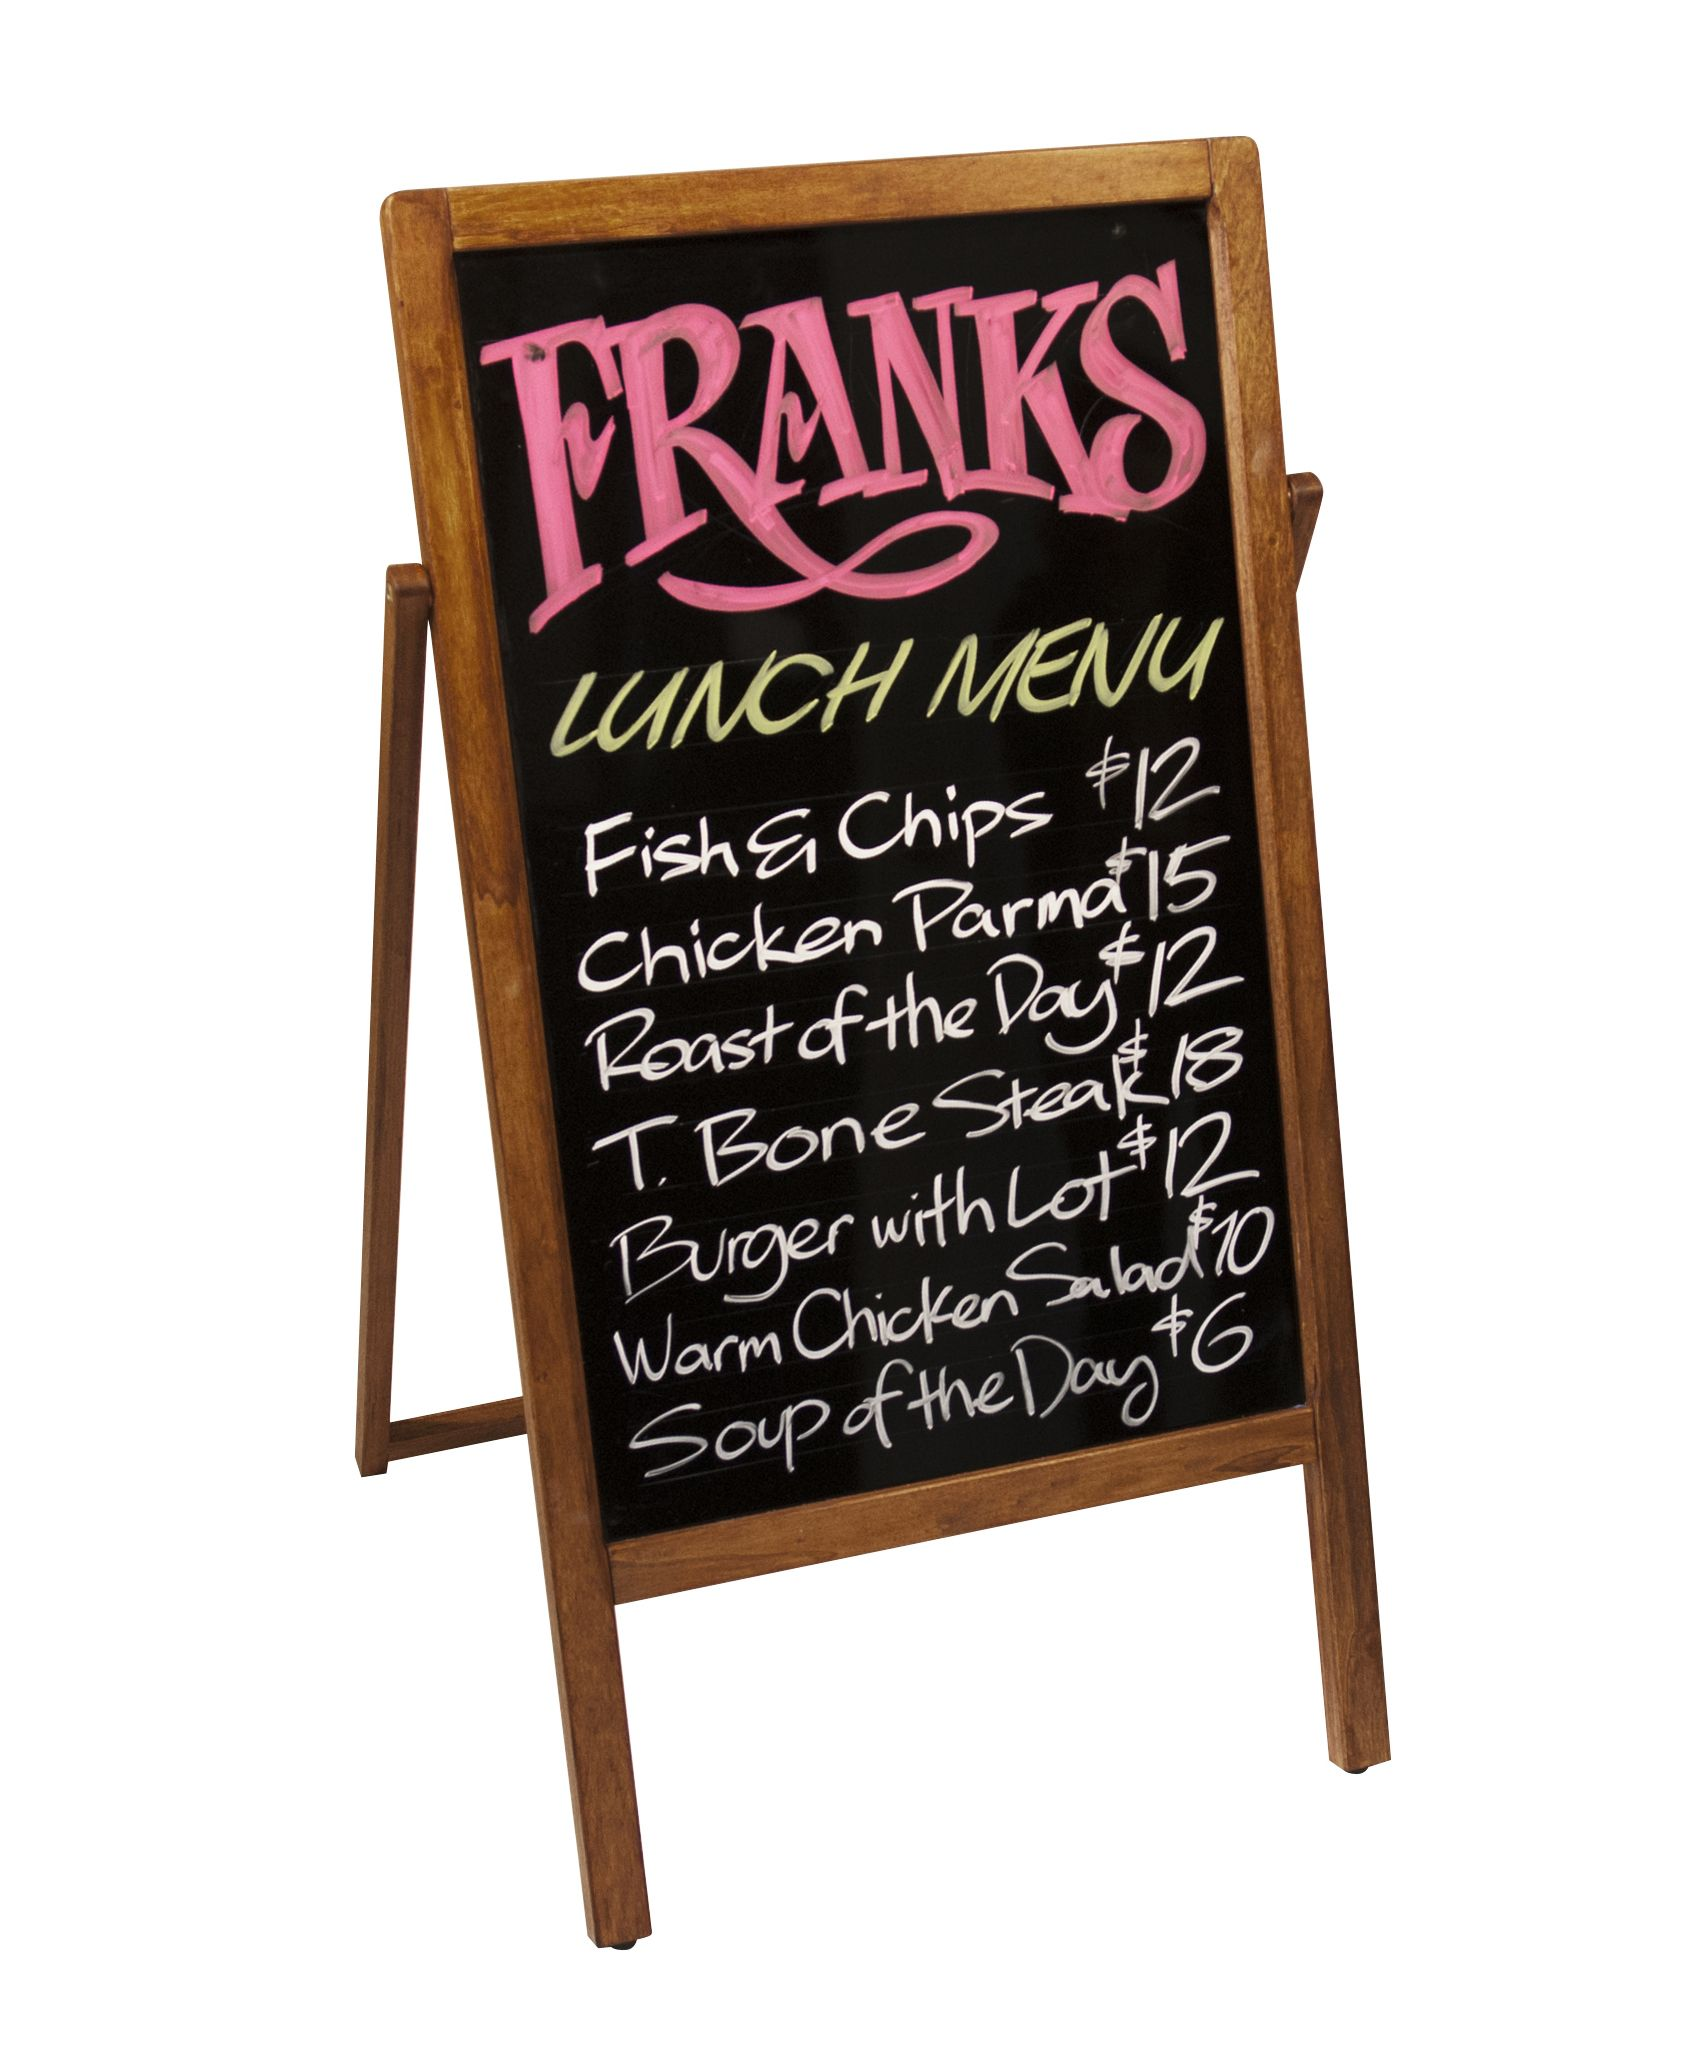 Wooden A Frame Sign With Reversible Chalkboard Surfaces Use This Unique A Frame Sign To Create An Eye Catching R Retail Signs Bakery Display Framed Chalkboard